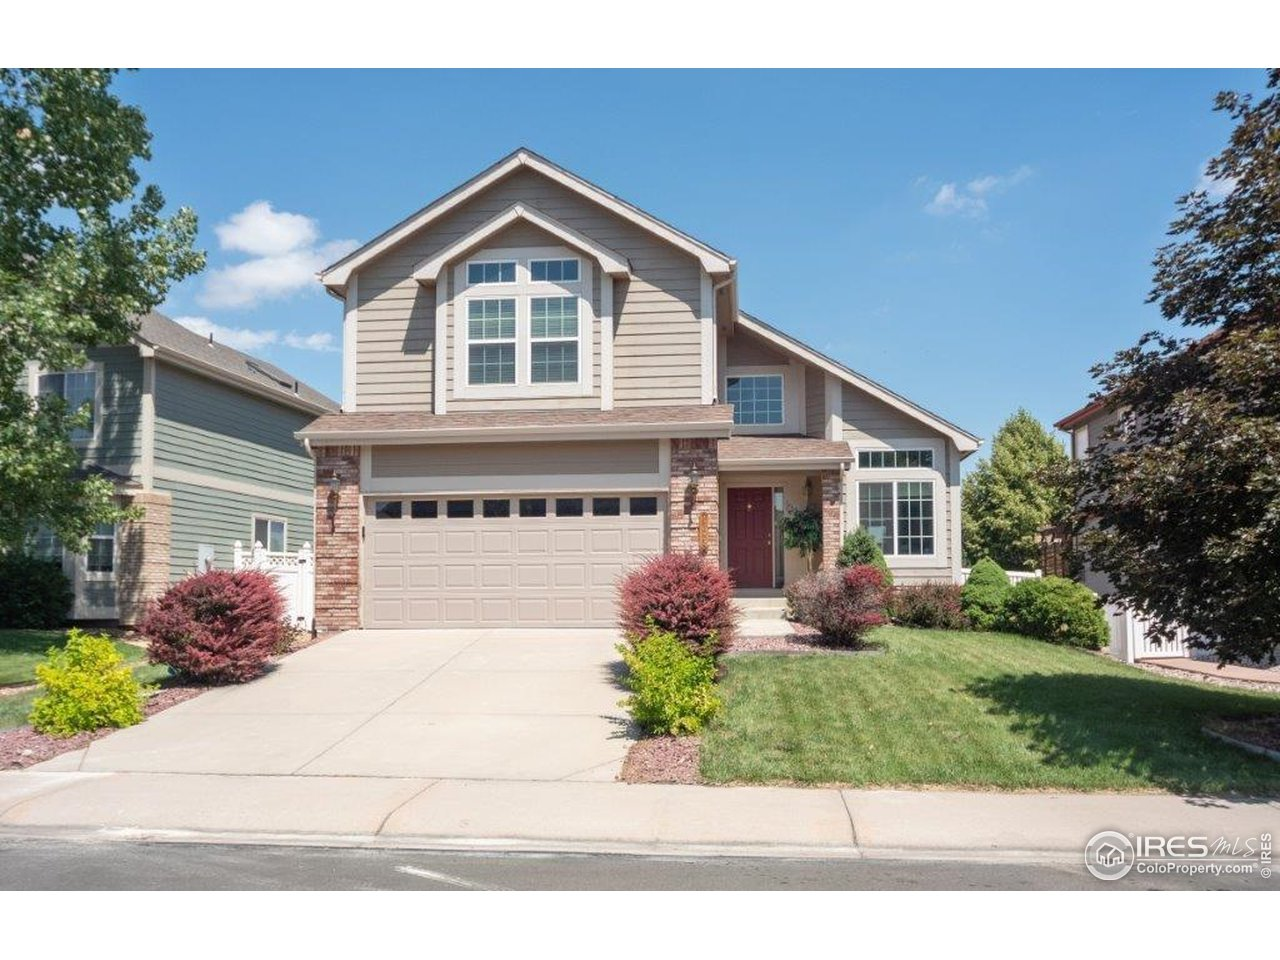 1426 Reeves Dr, Fort Collins CO 80526